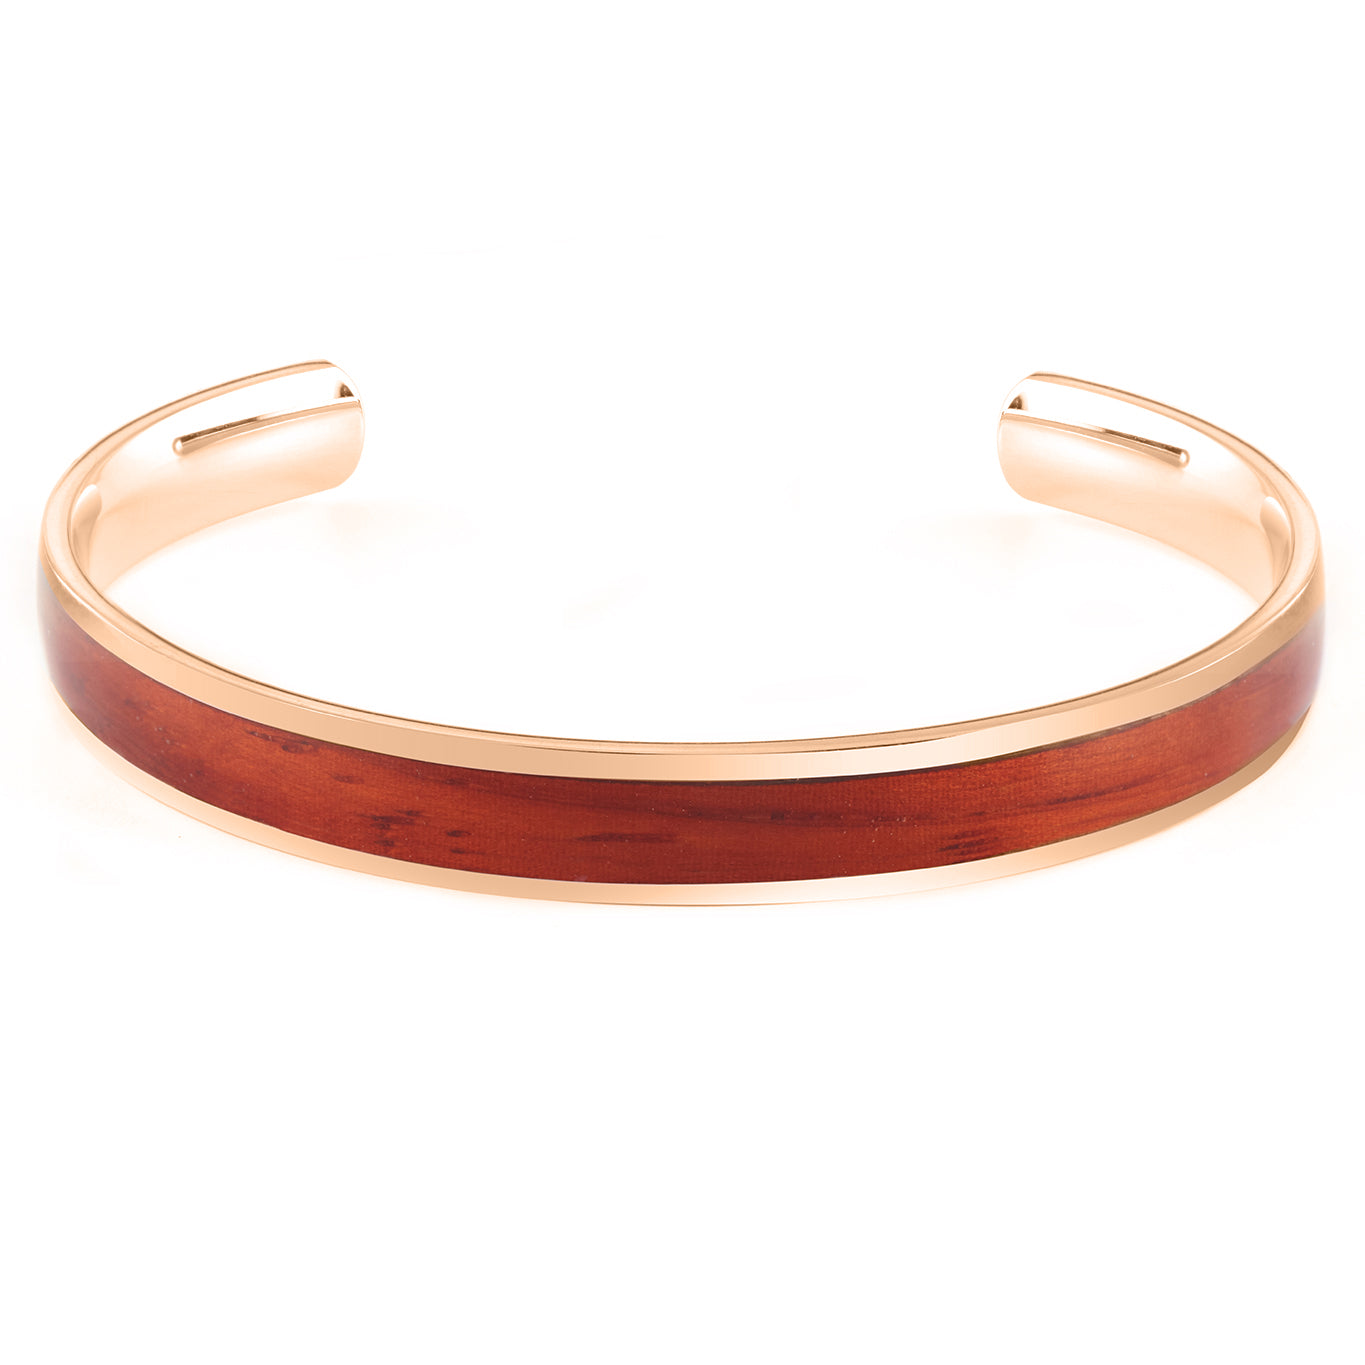 Diana Rosewood - Rosegold Bangle